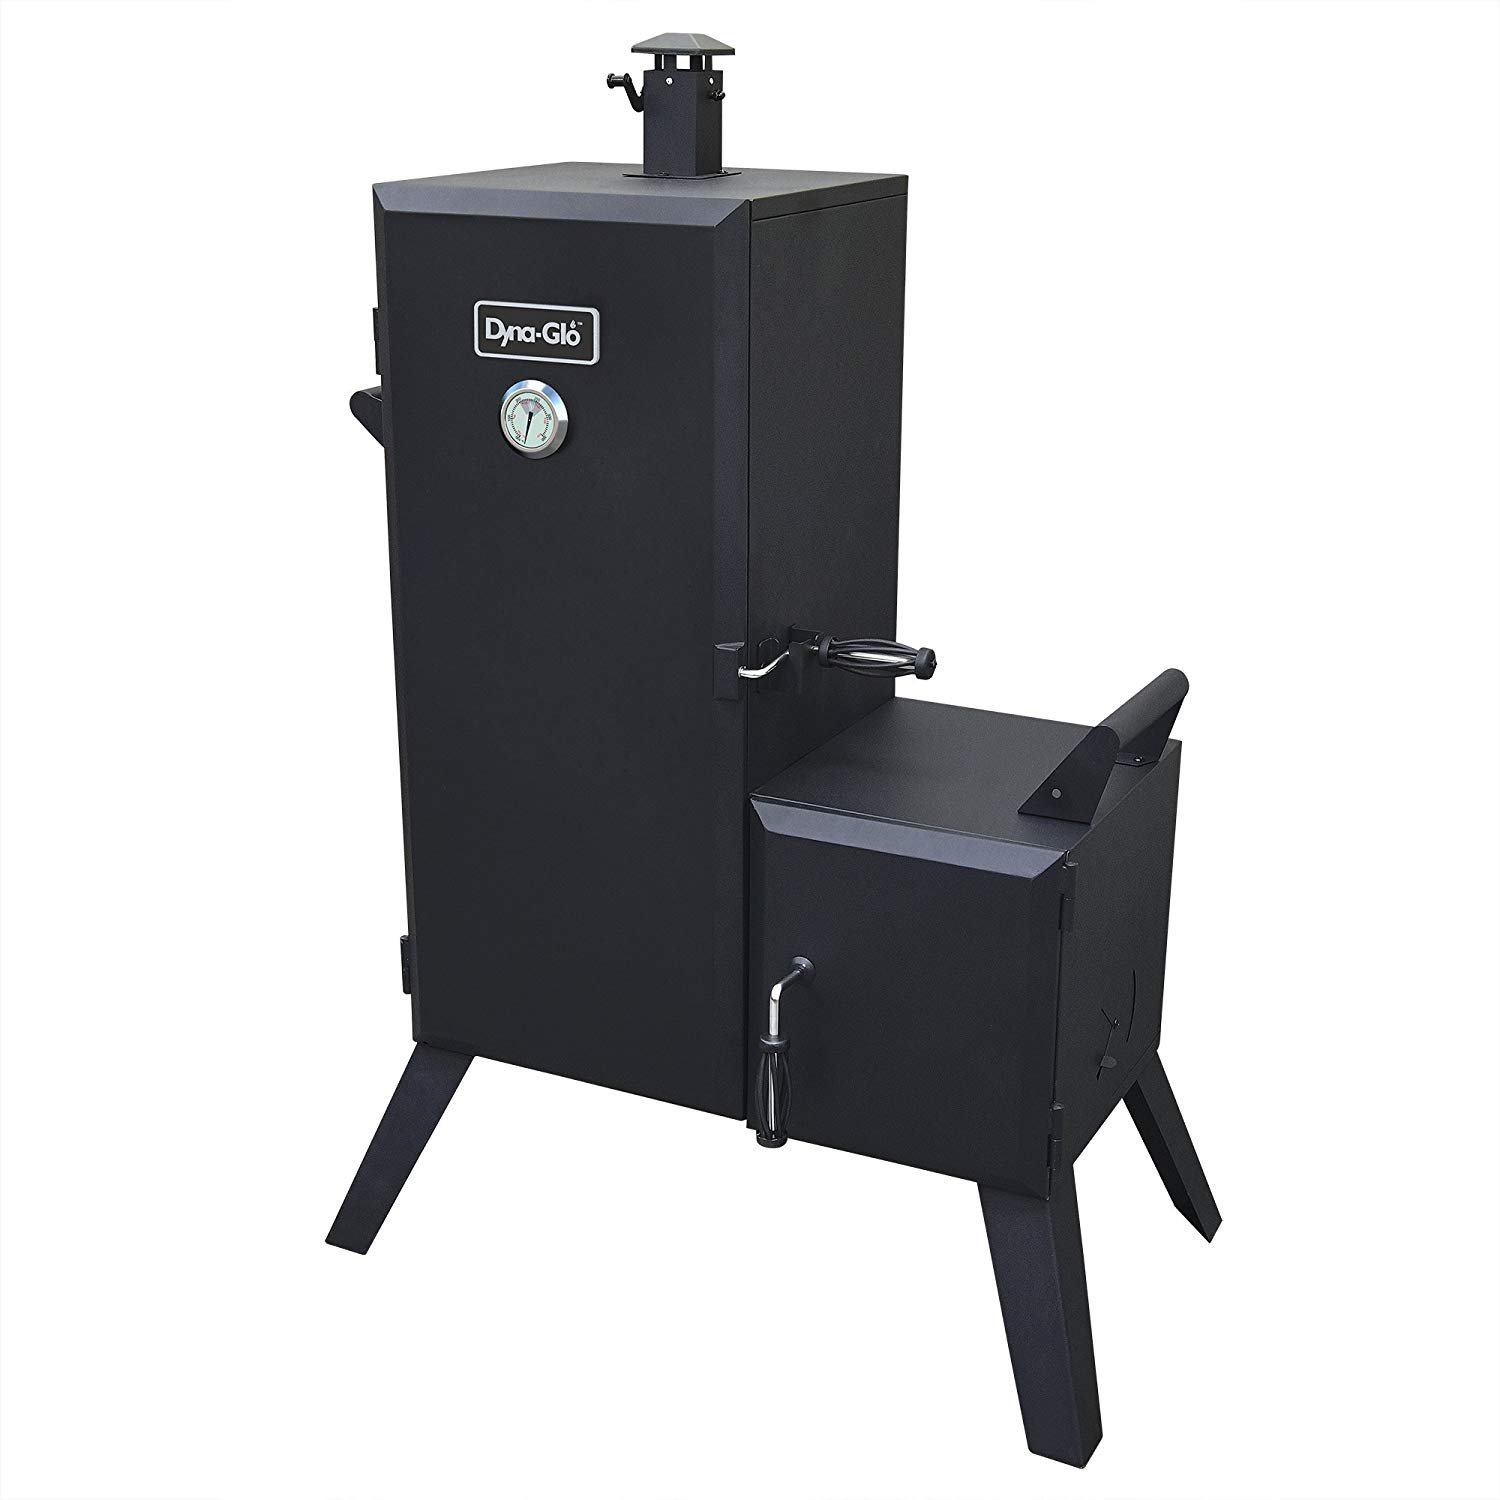 Dyna-Glo DGO1176BDC-D Charcoal Offset Smoker Review